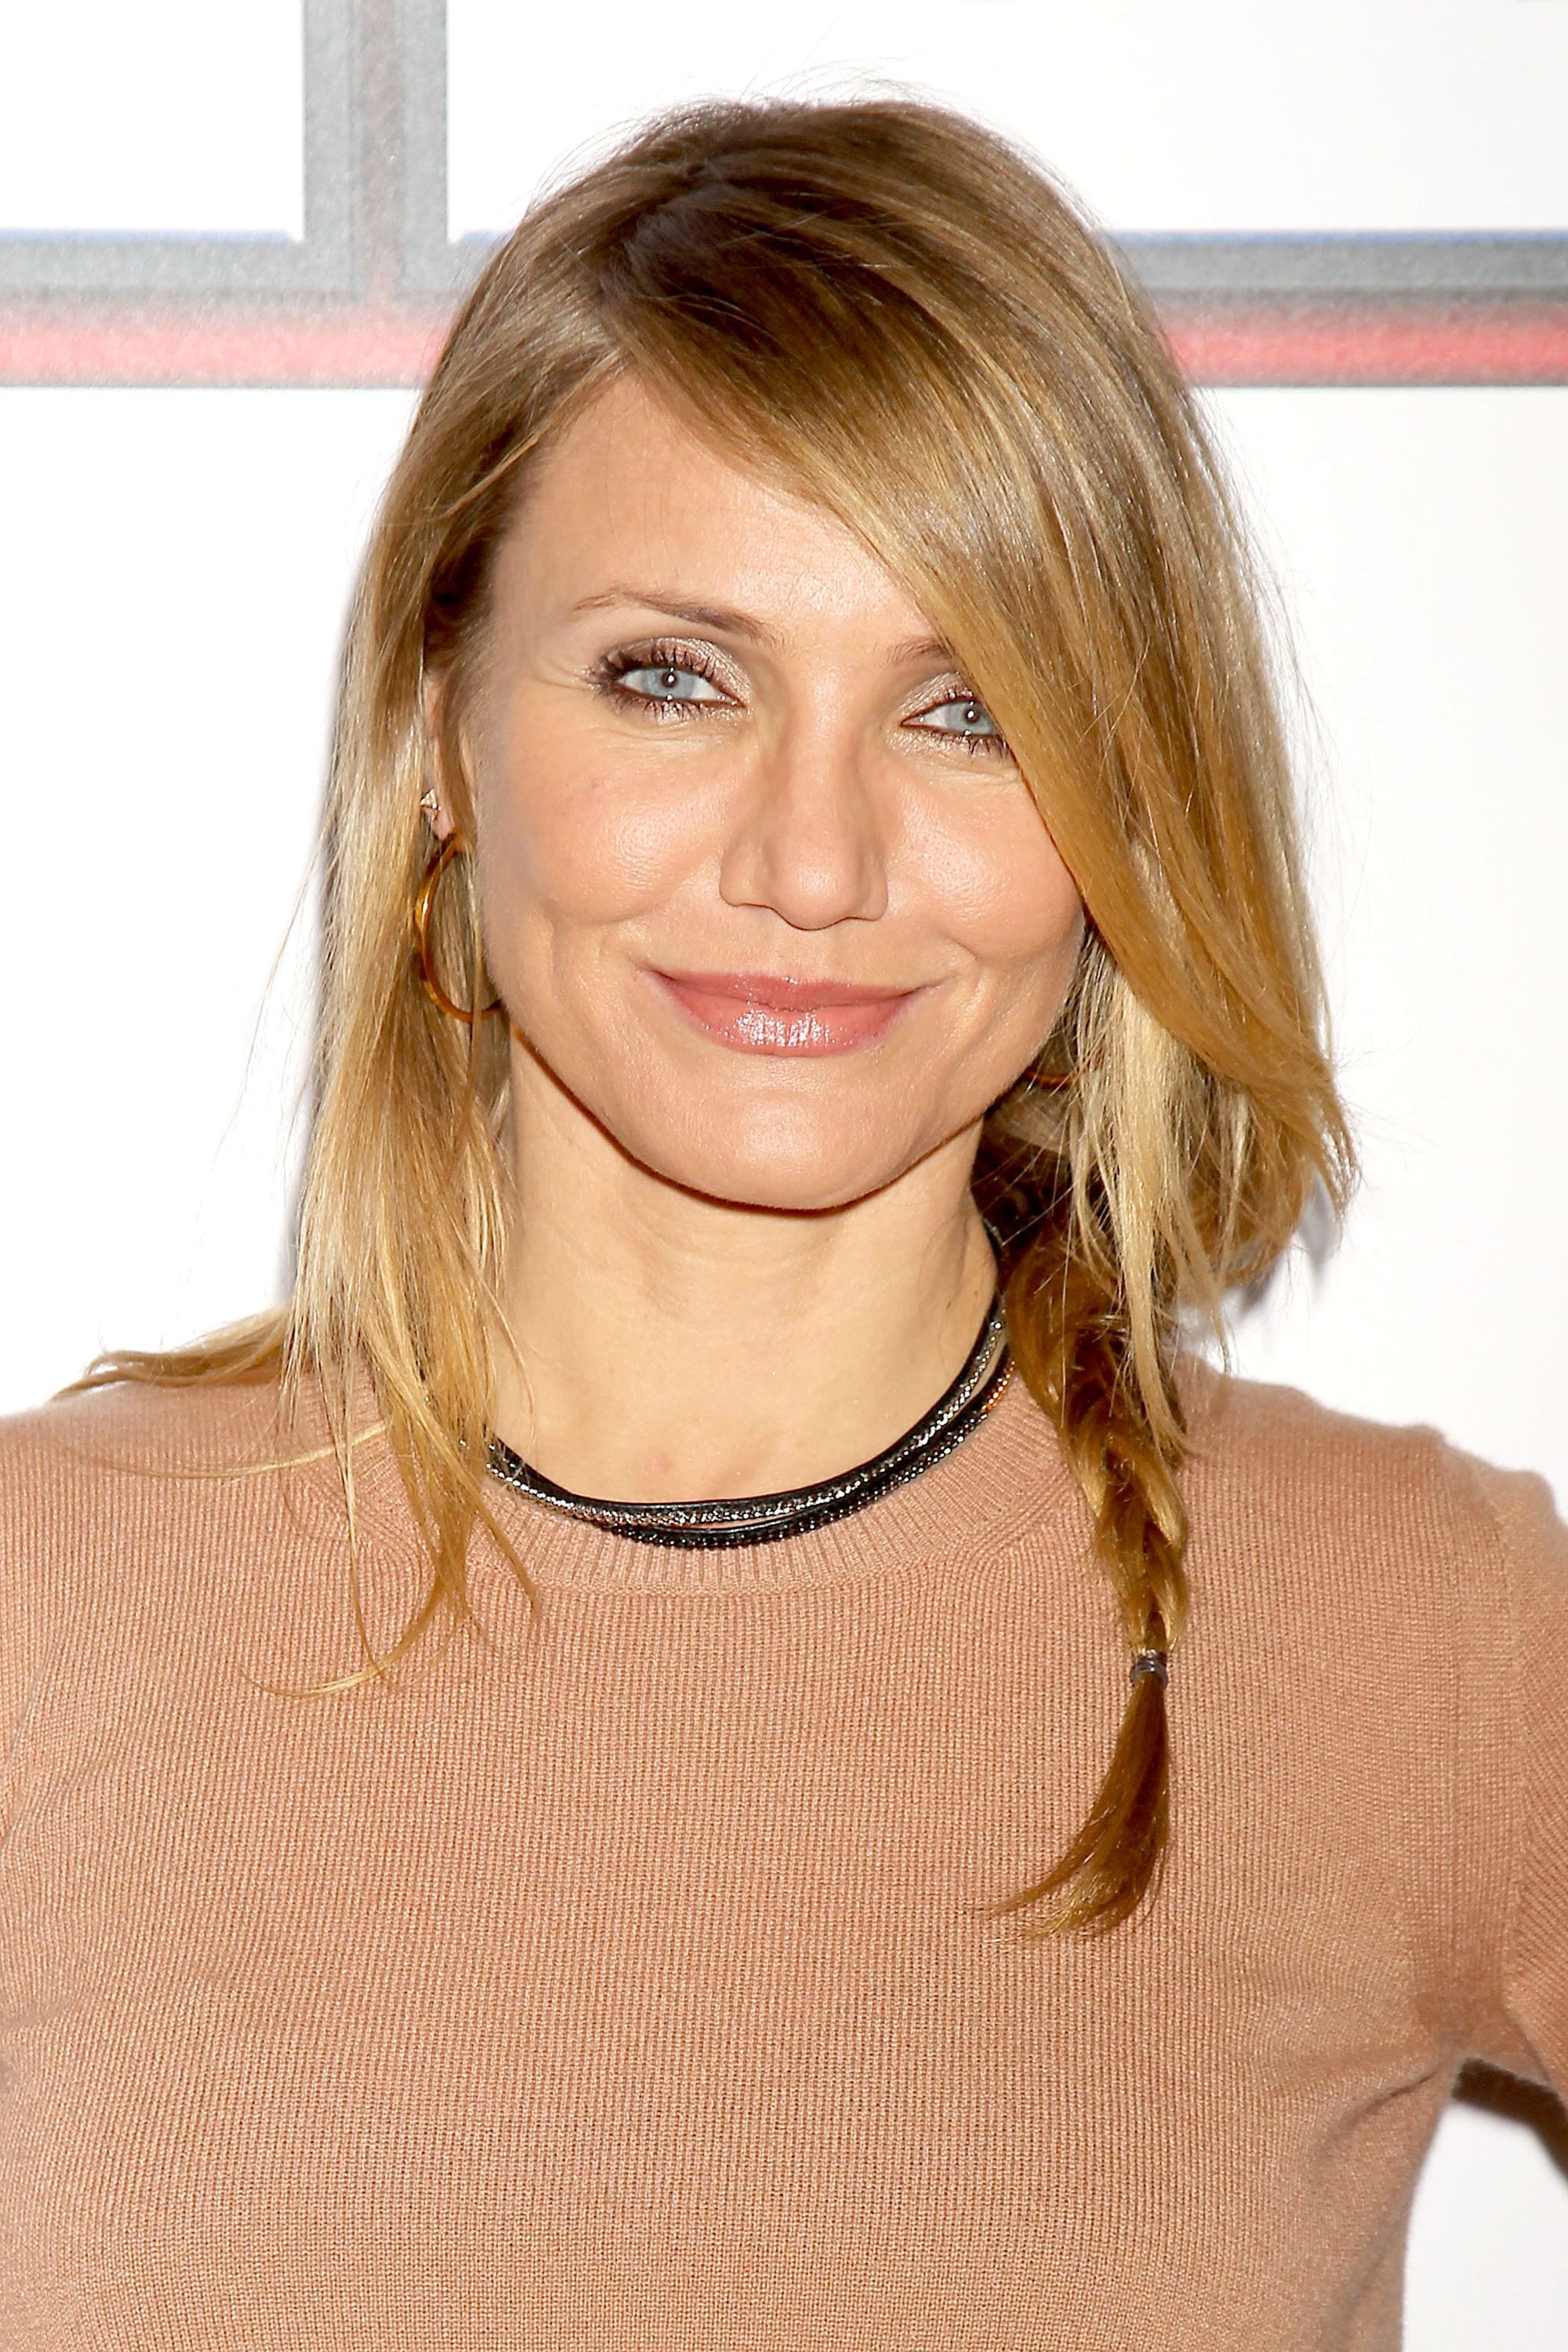 actress cameron diaz on the red carpet with her hair in a side braid with long side bangs